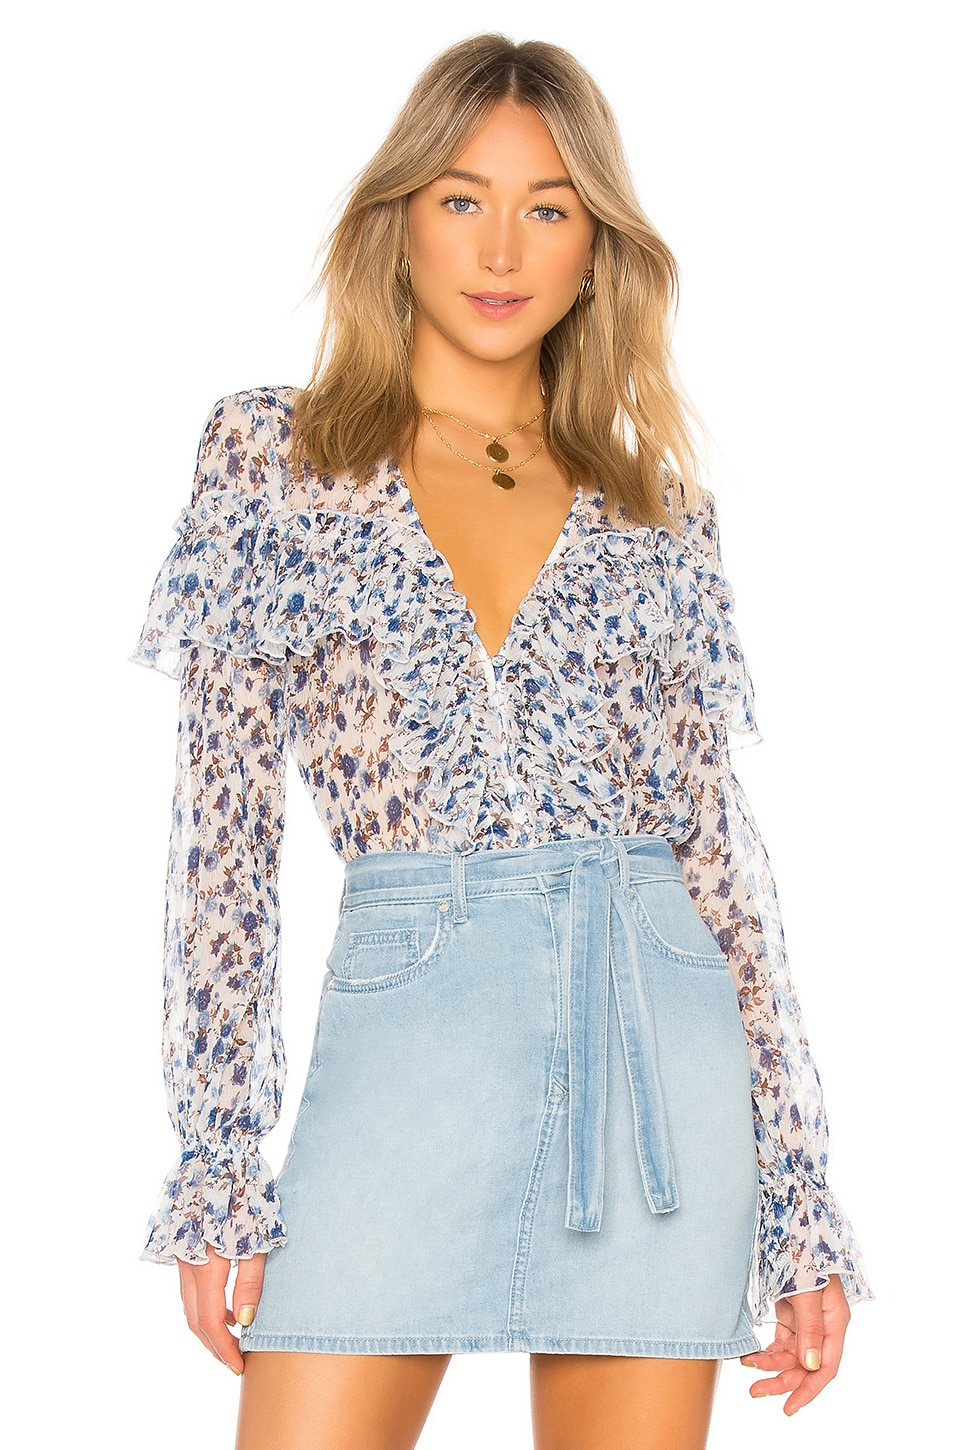 MAJORELLE Mariel Blouse in Misty Blue